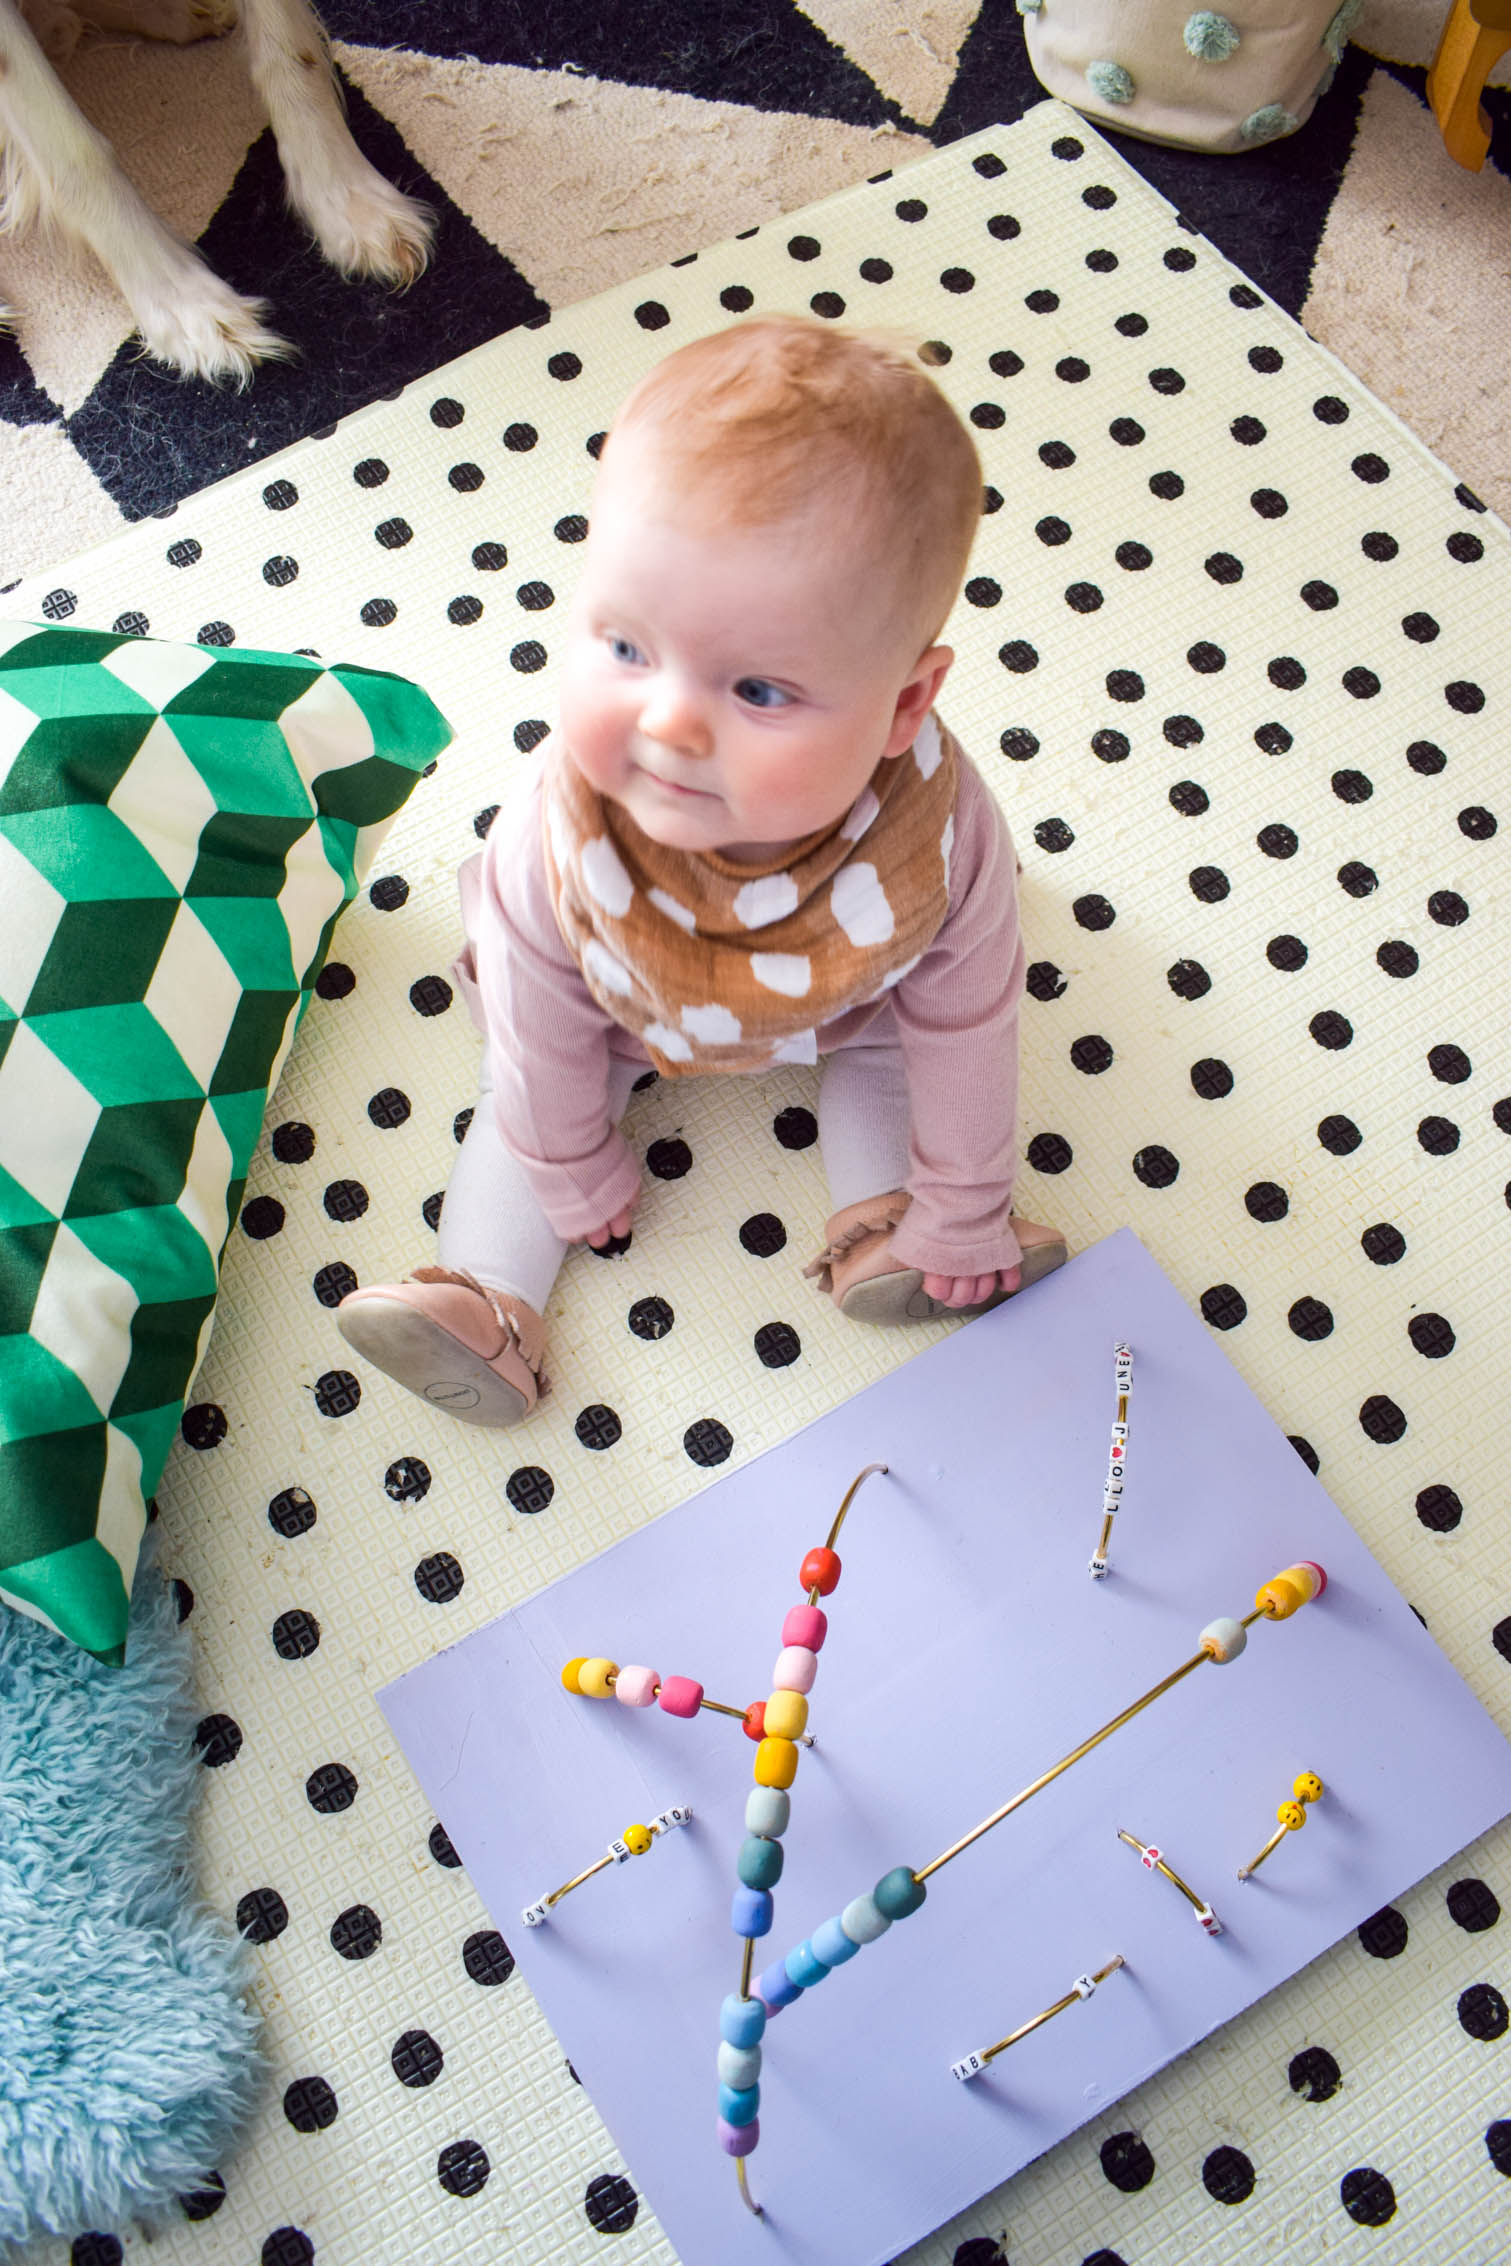 Make your own DIY baby activity table using items you may already have (or can easily order online) and keep your baby stimulated and entertained!